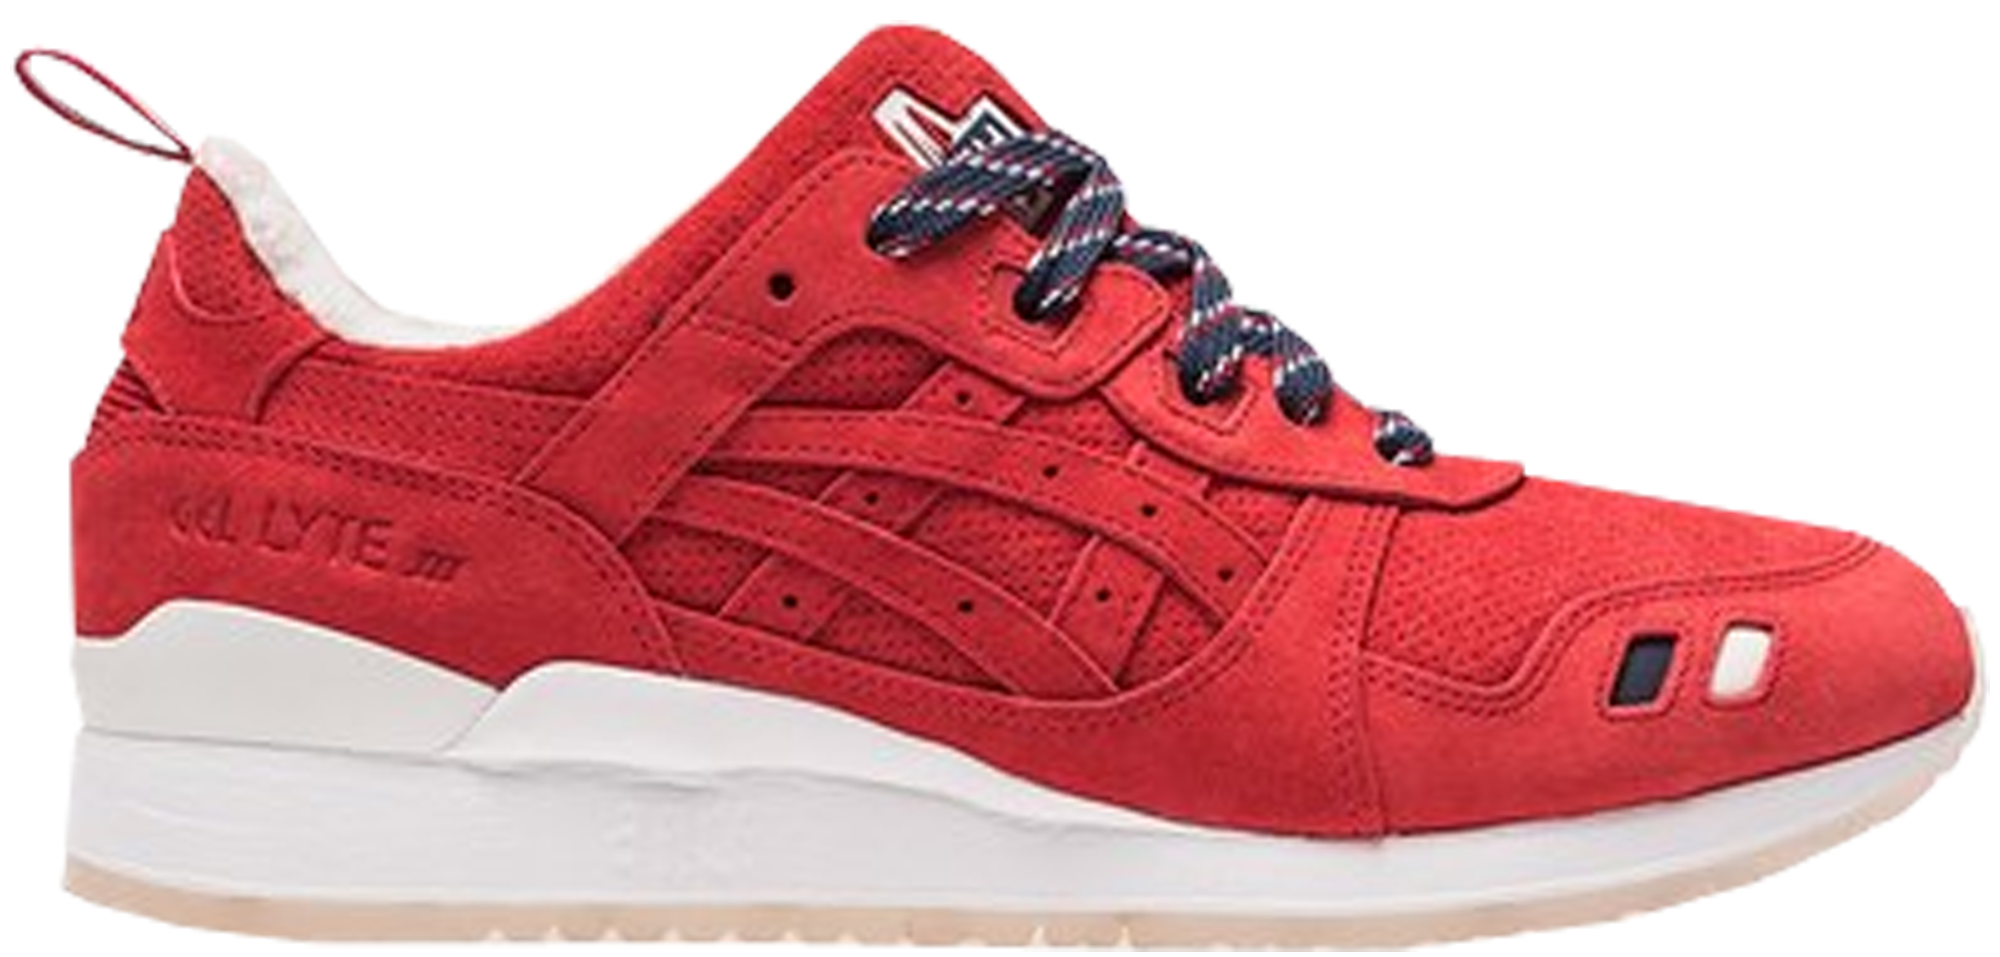 Asics Gel-Lyte III Kith x Moncler Red